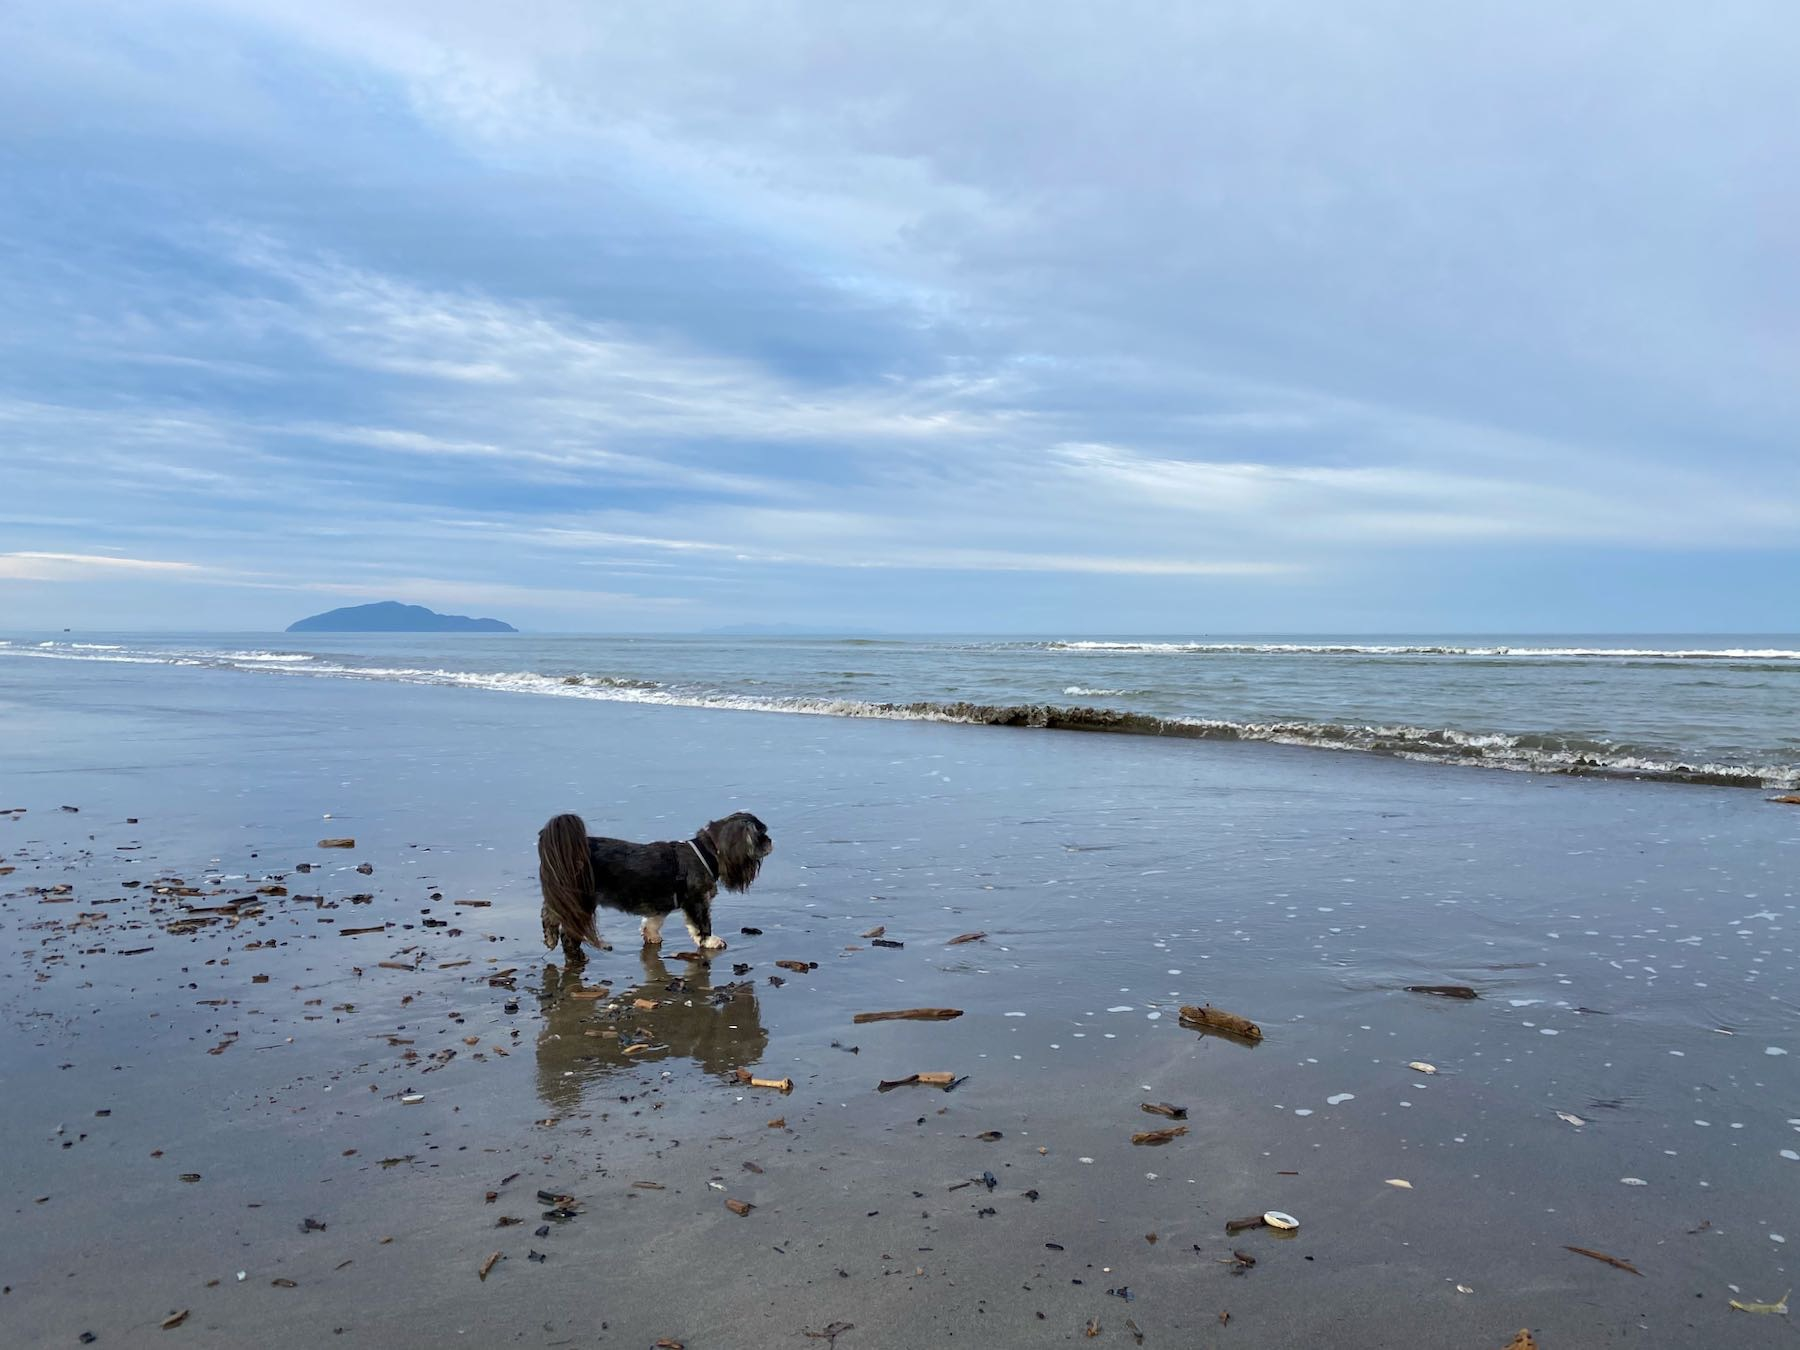 Small black dog reflected in the damp sand at the edge of the sea.